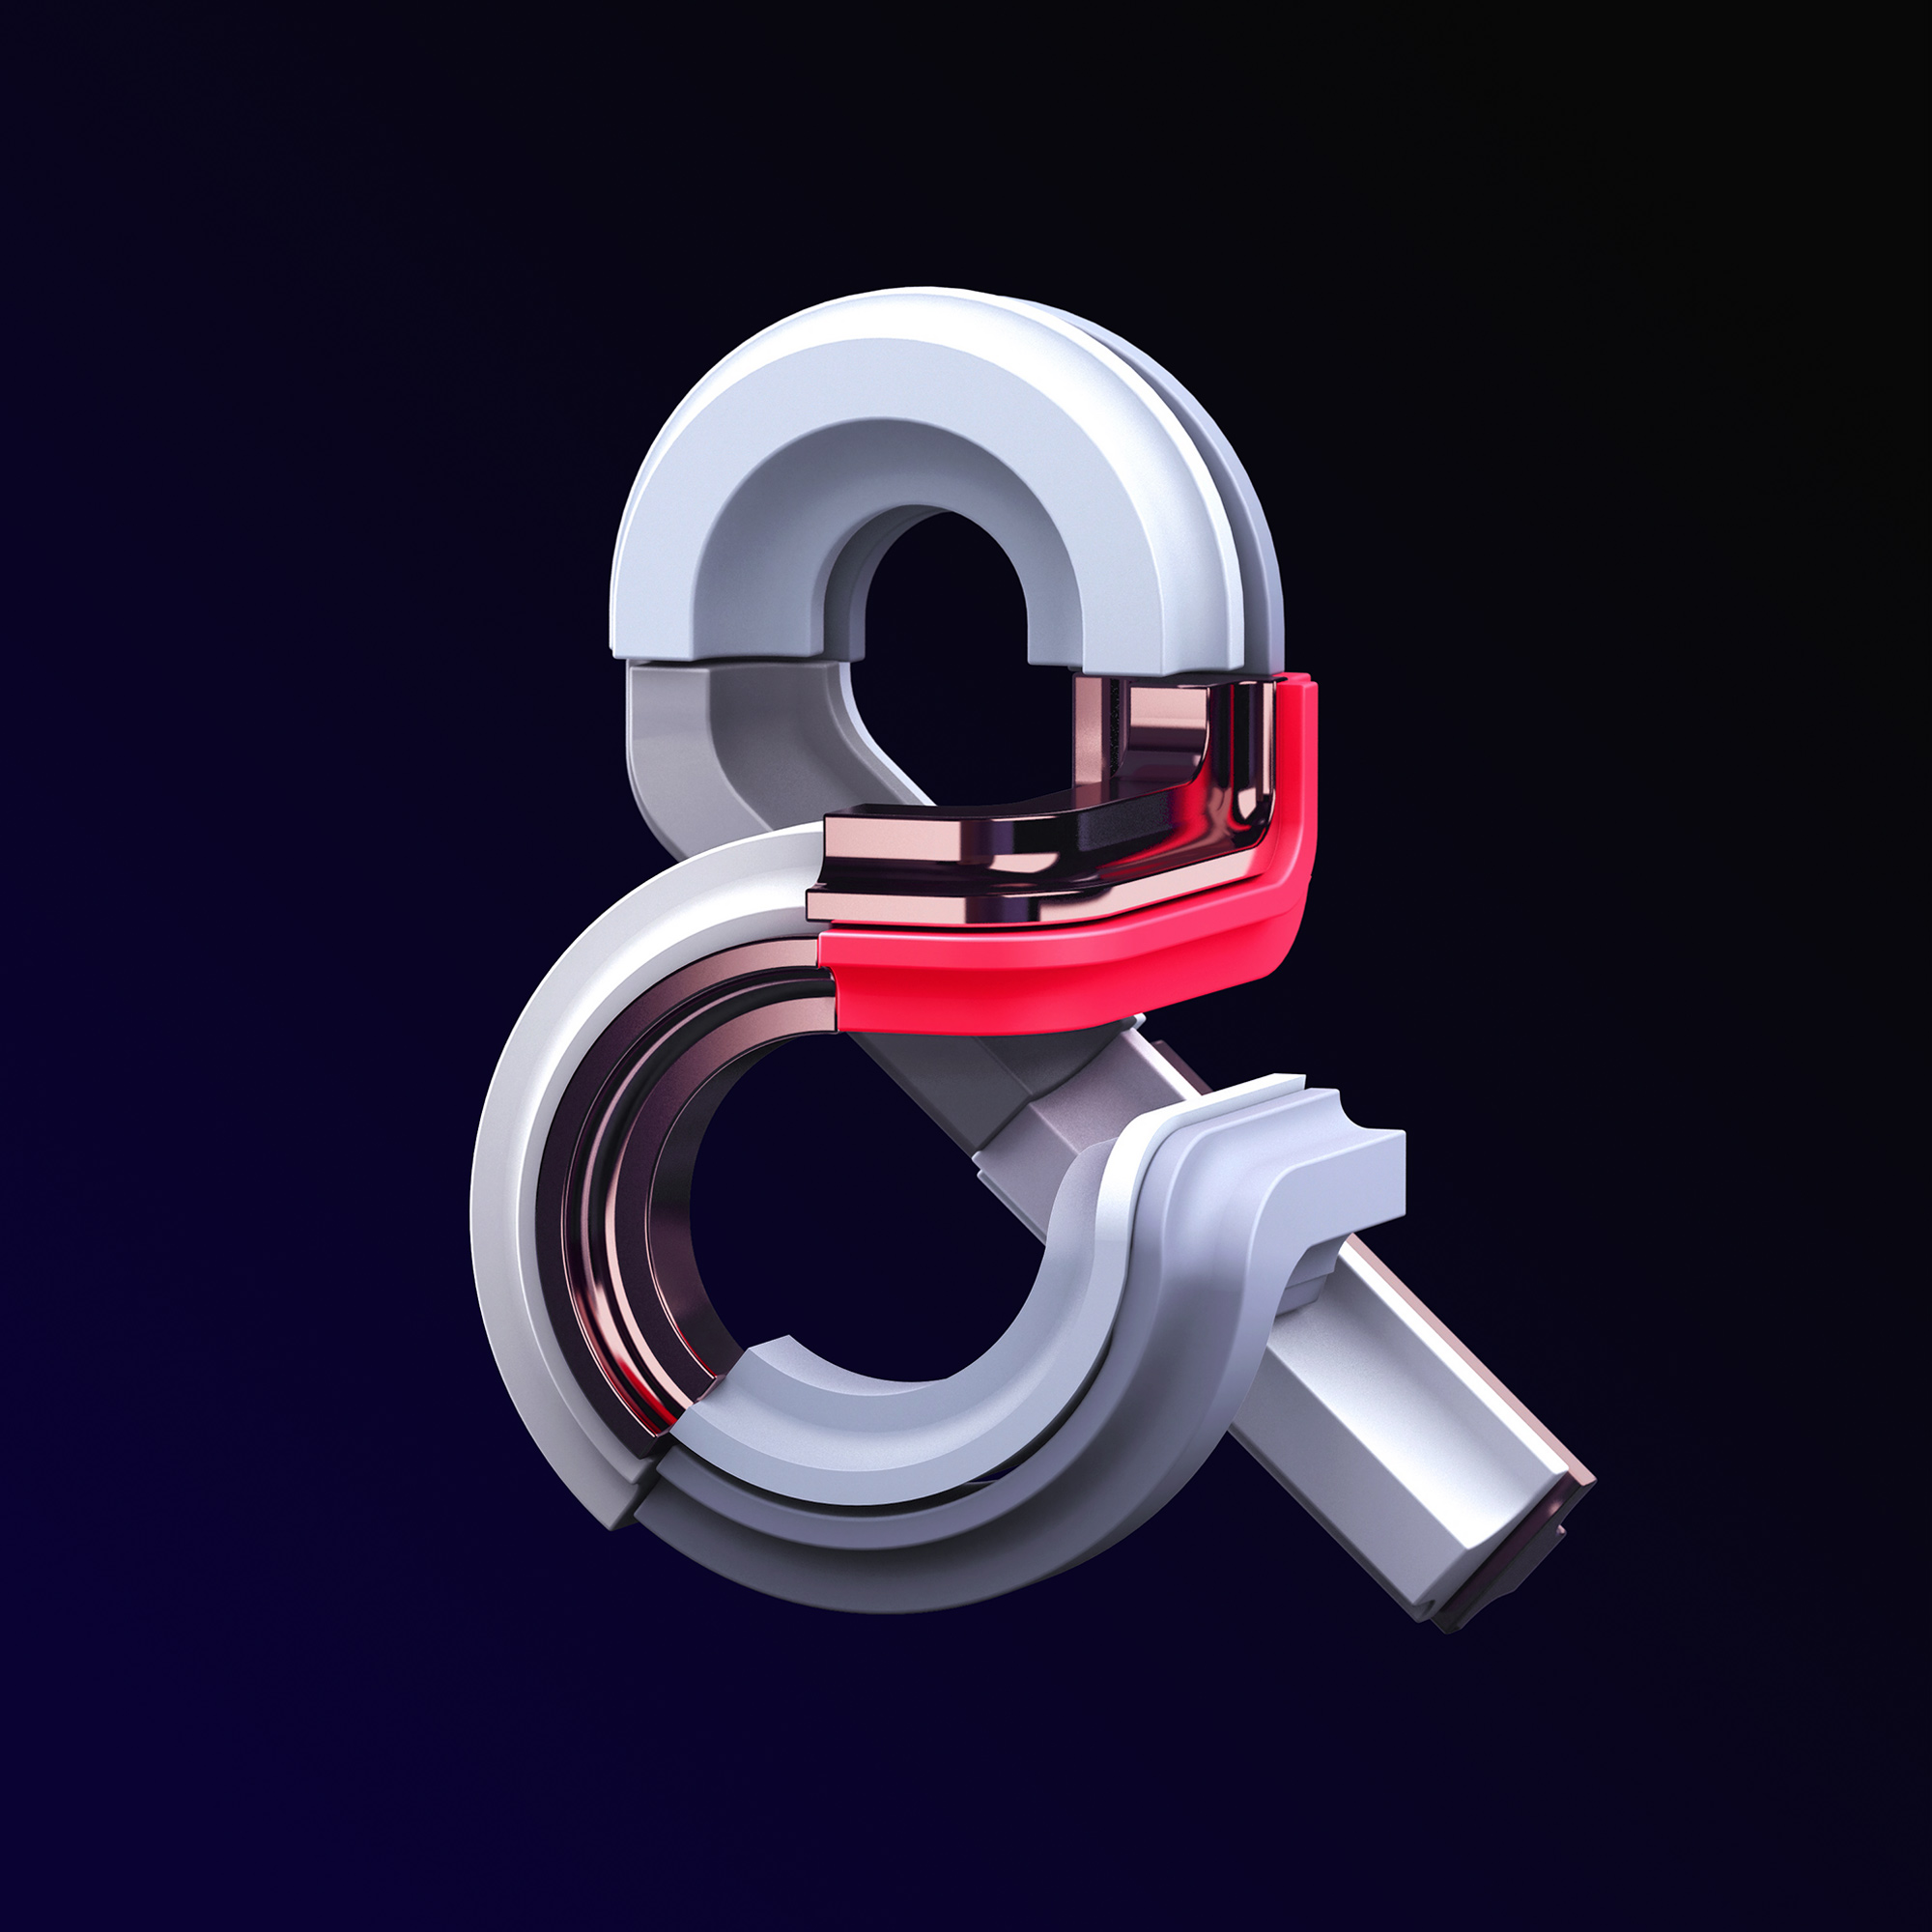 Adobe Ampersands - 3D ampersand lettering visual designs version 2 by Singapore based brand strategy and creative design consultancy, BÜRO UFHO.